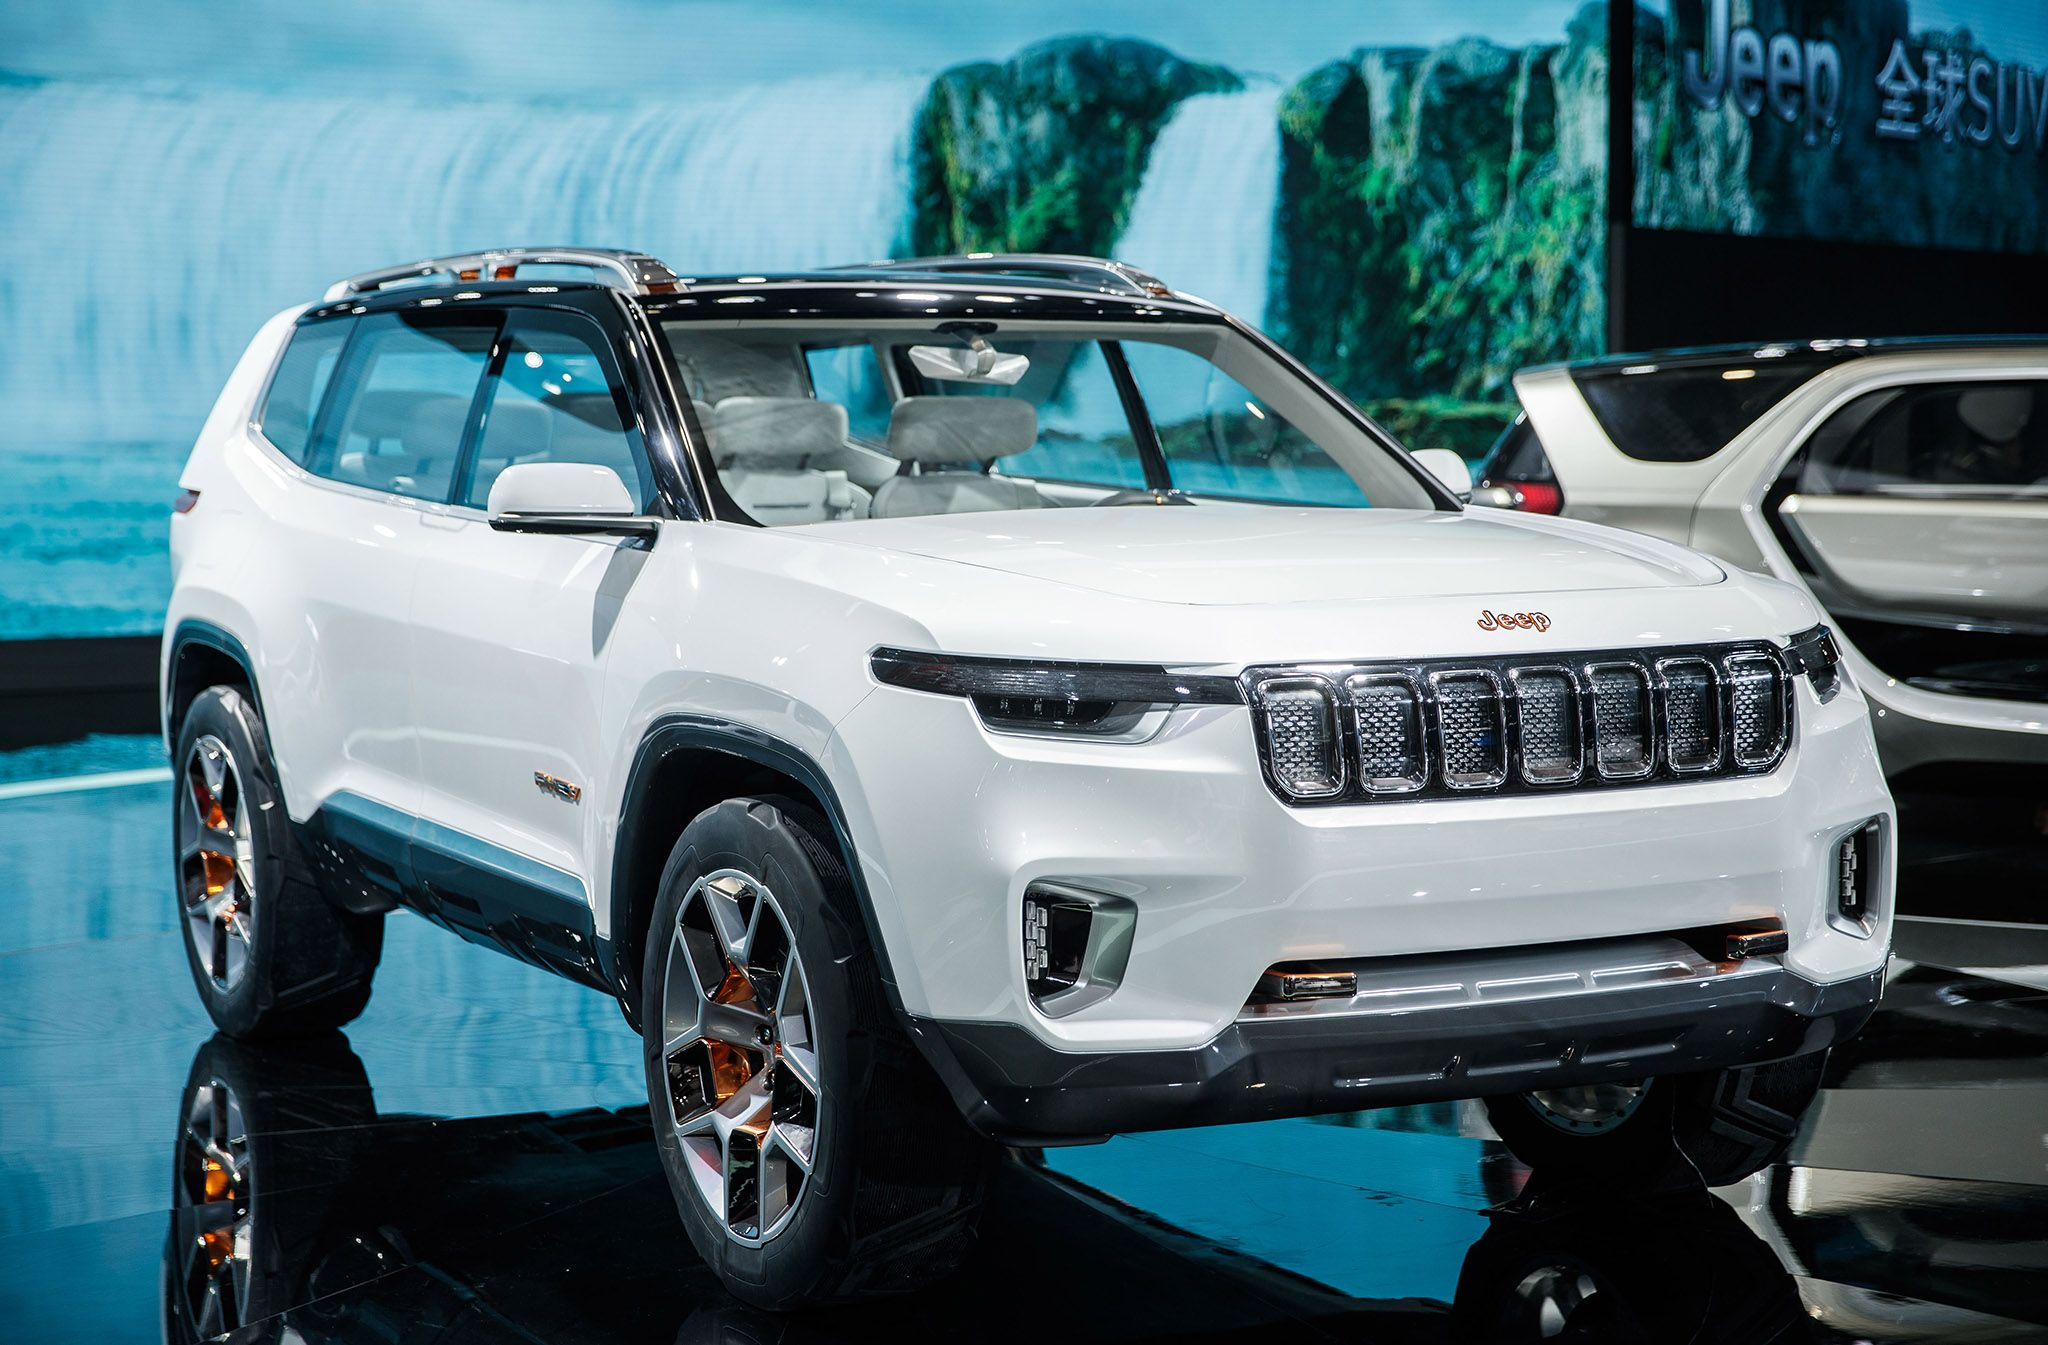 Jeep Recently Displayed The Jeep Yuntu Concept At The 2017